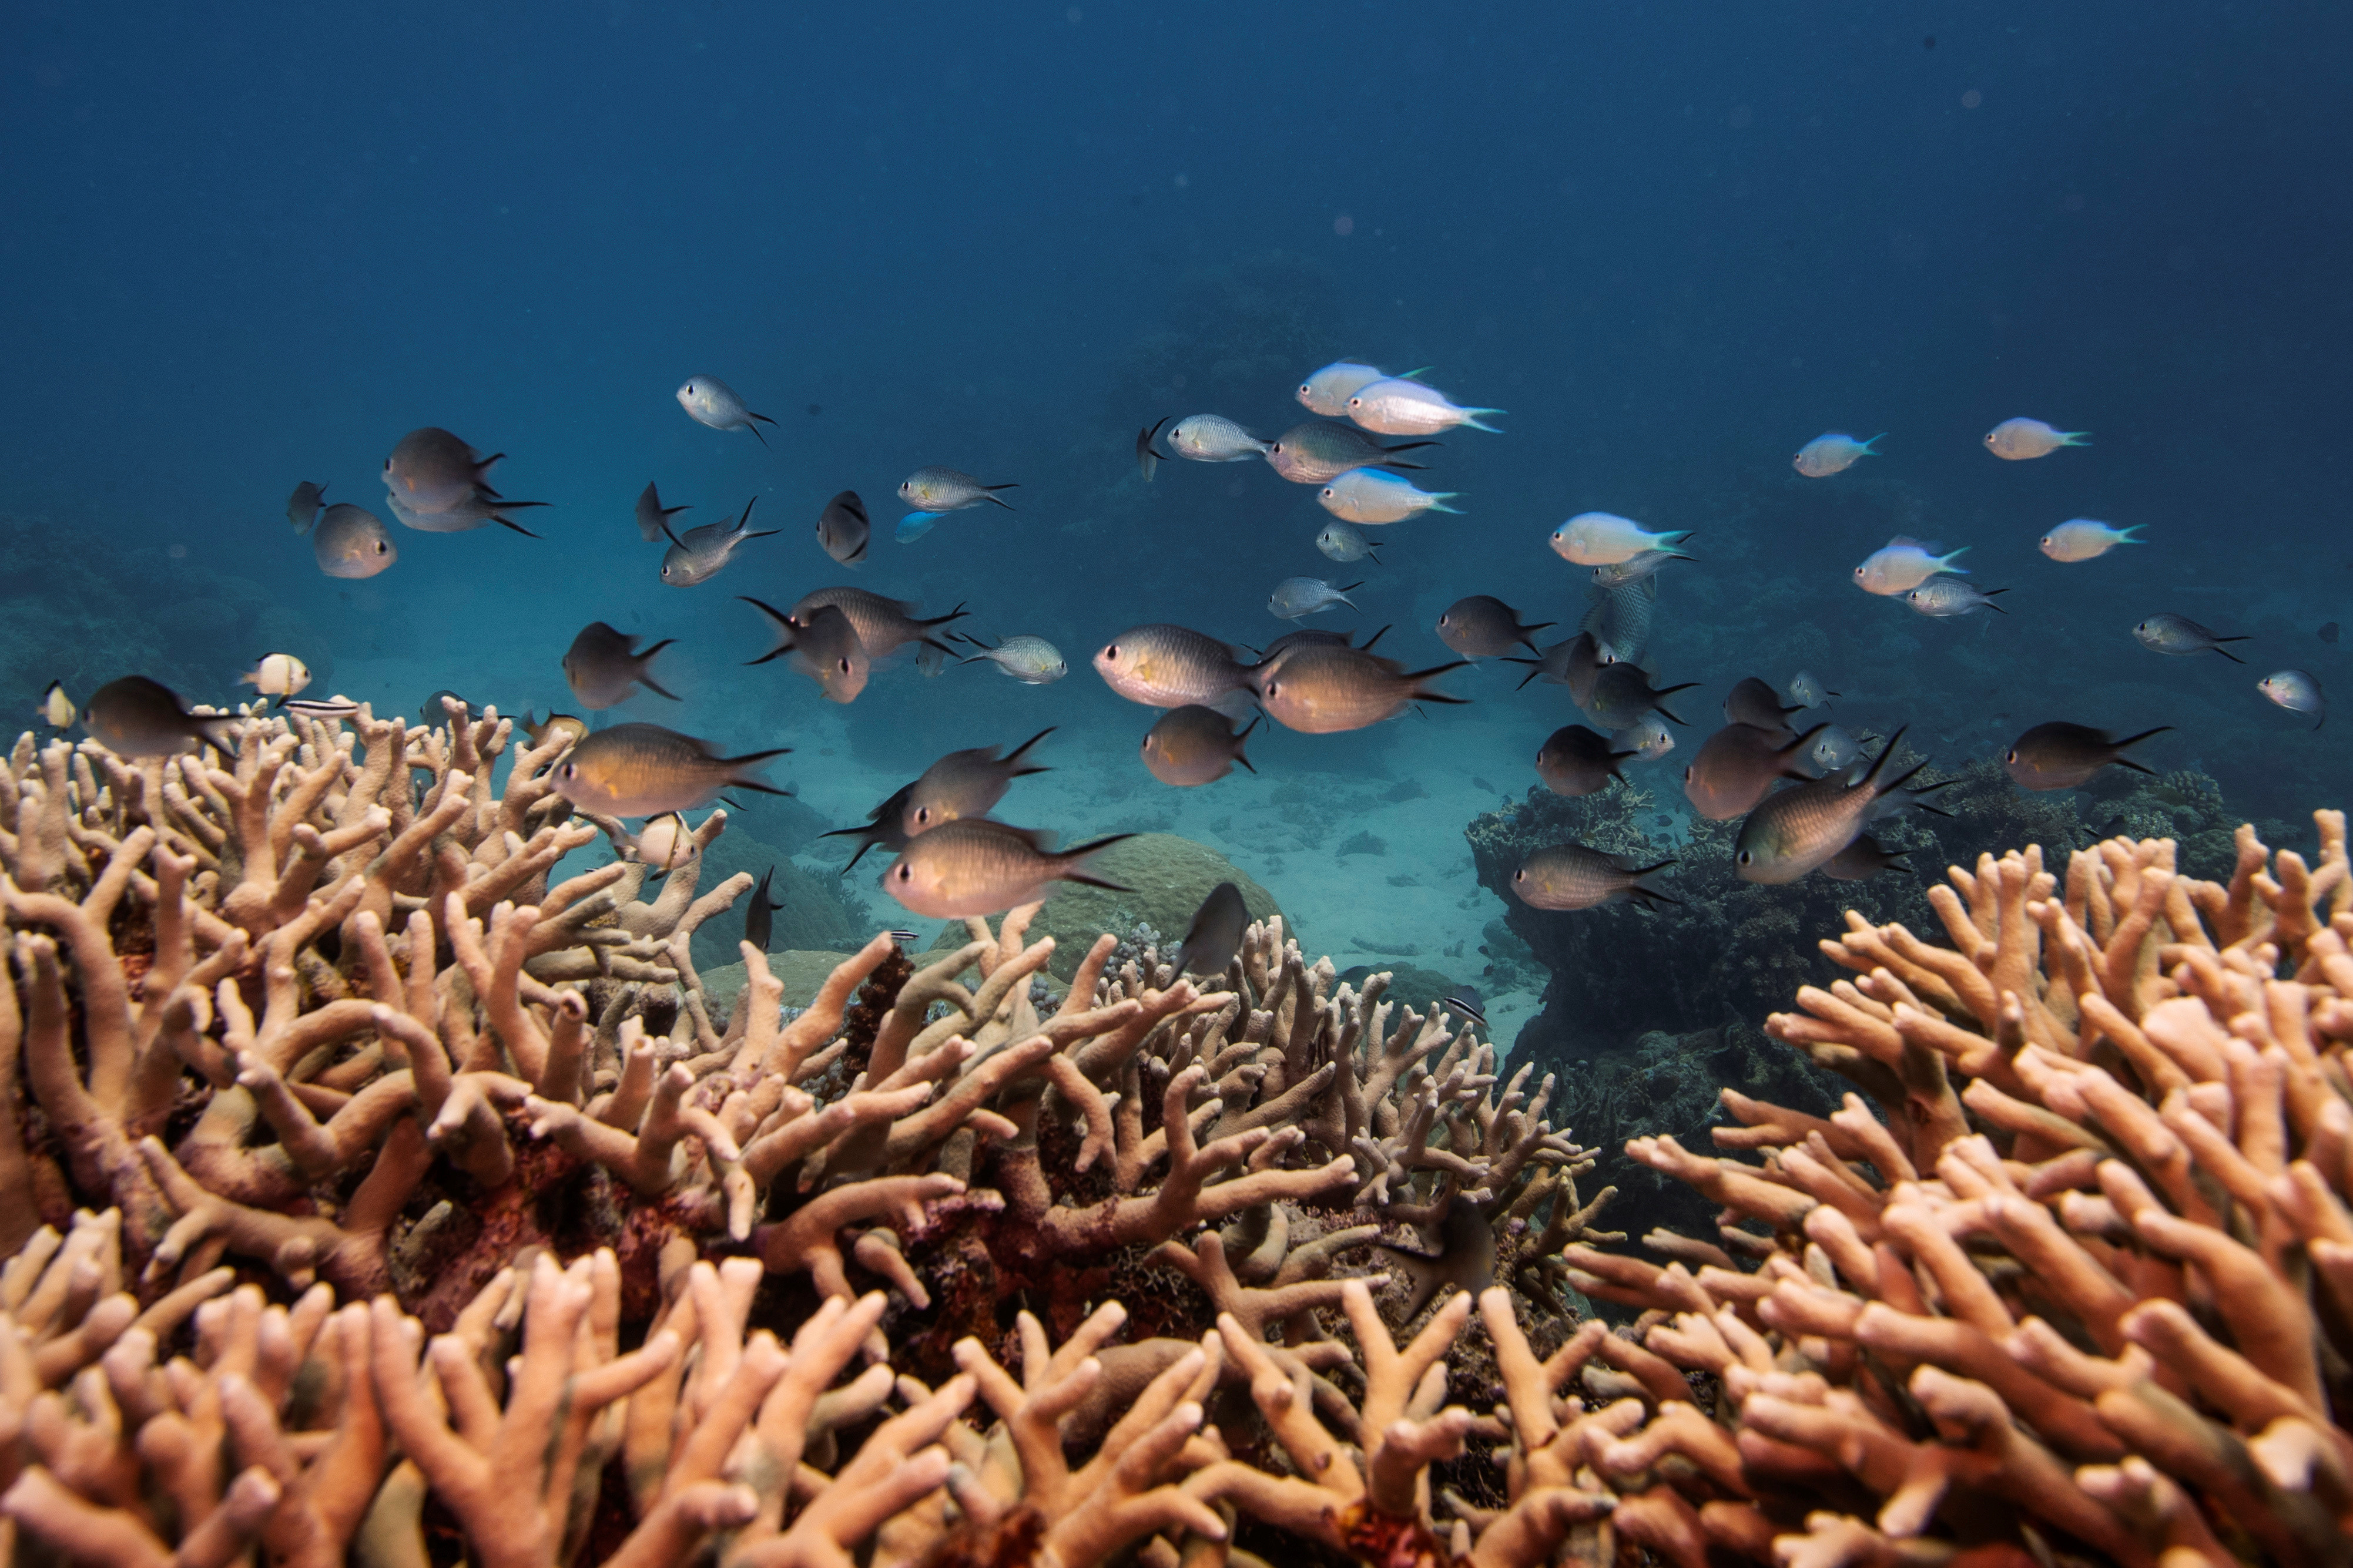 A school of fish swim above a staghorn coral colony as it grows on the Great Barrier Reef off the coast of Cairns, Australia October 25, 2019.